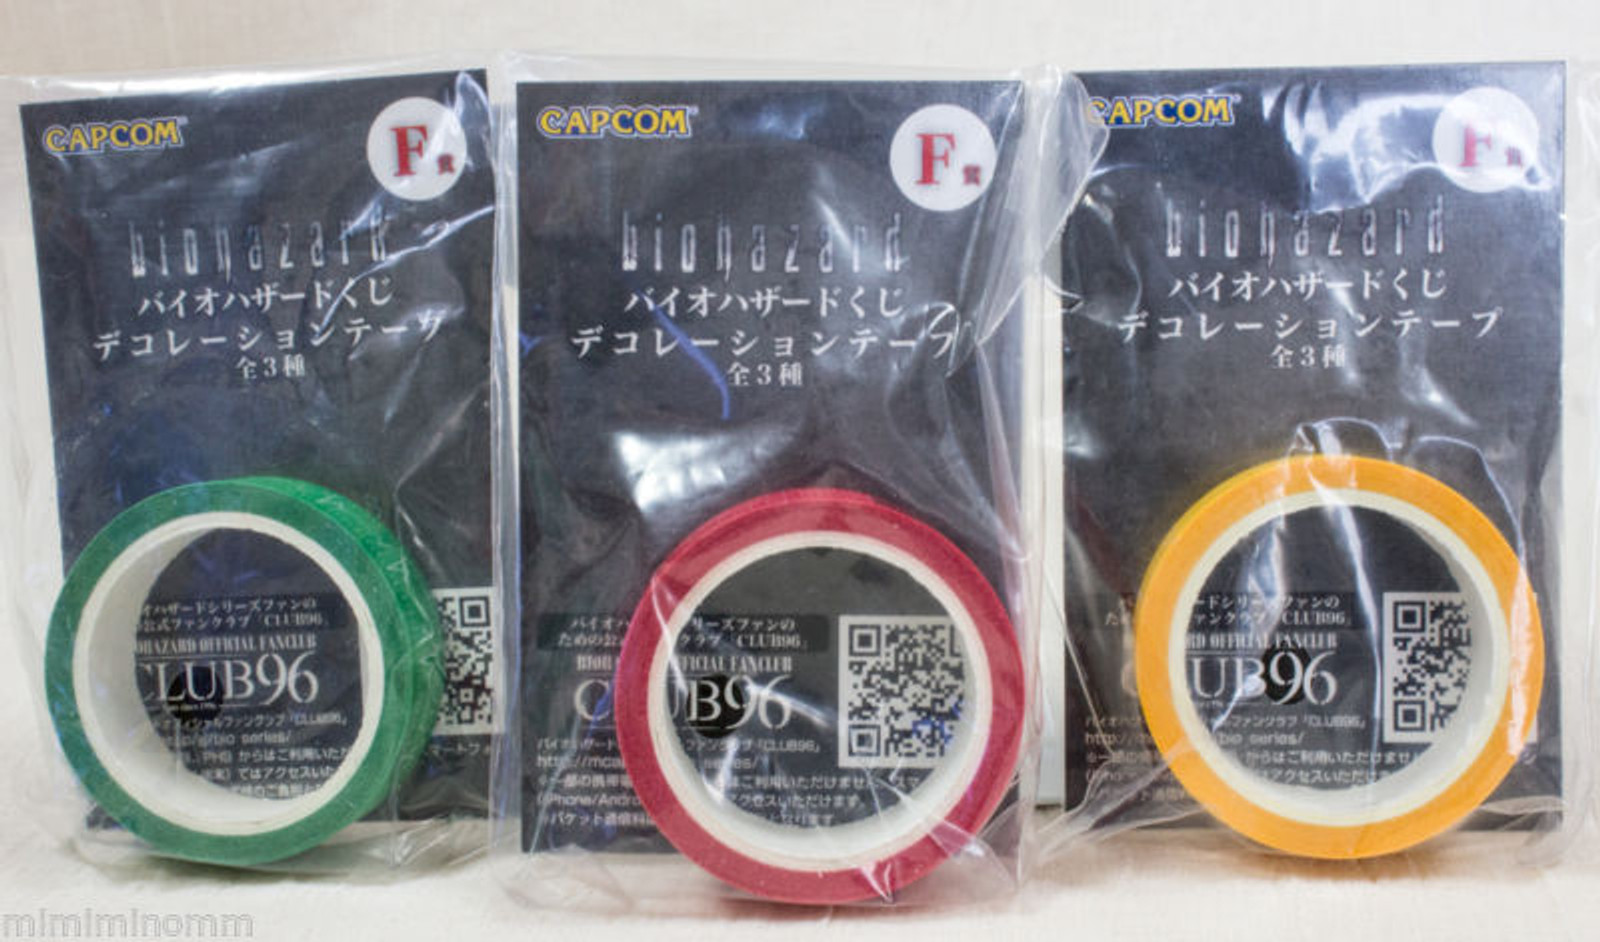 [Set of 3 colors] RESIDENT EVIL Biohazard Decoration Tape Capcom JAPAN GAME RESIDENT EVIL